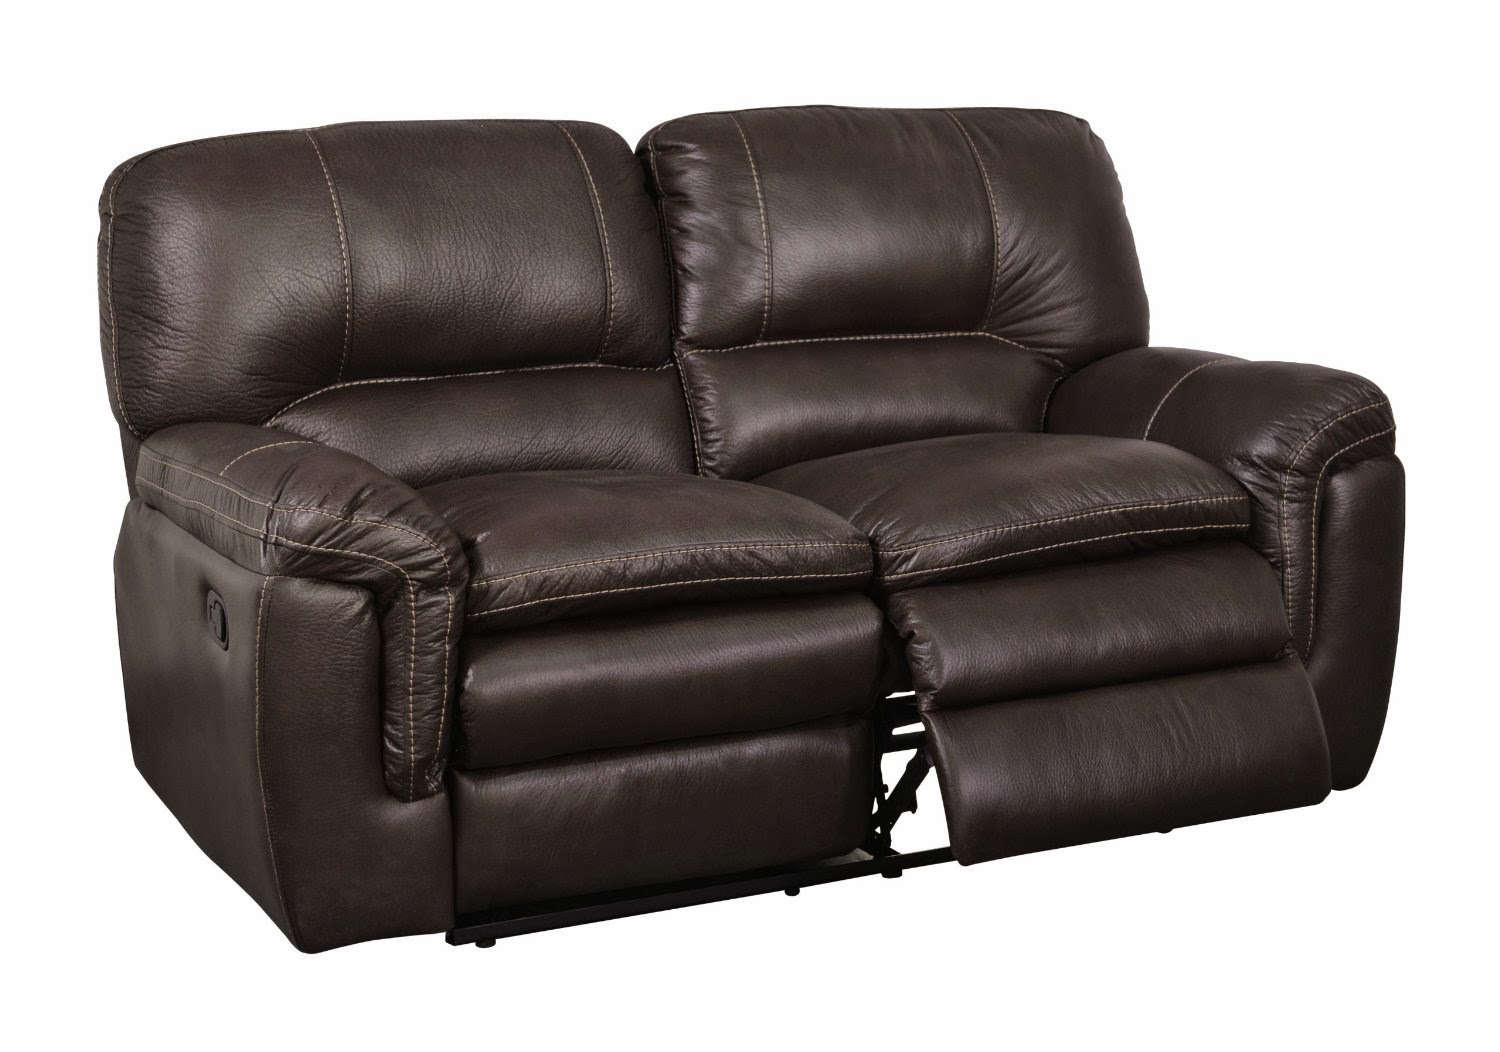 Reclining sofa loveseat and chair sets march 2015 Reclining leather sofa and loveseat